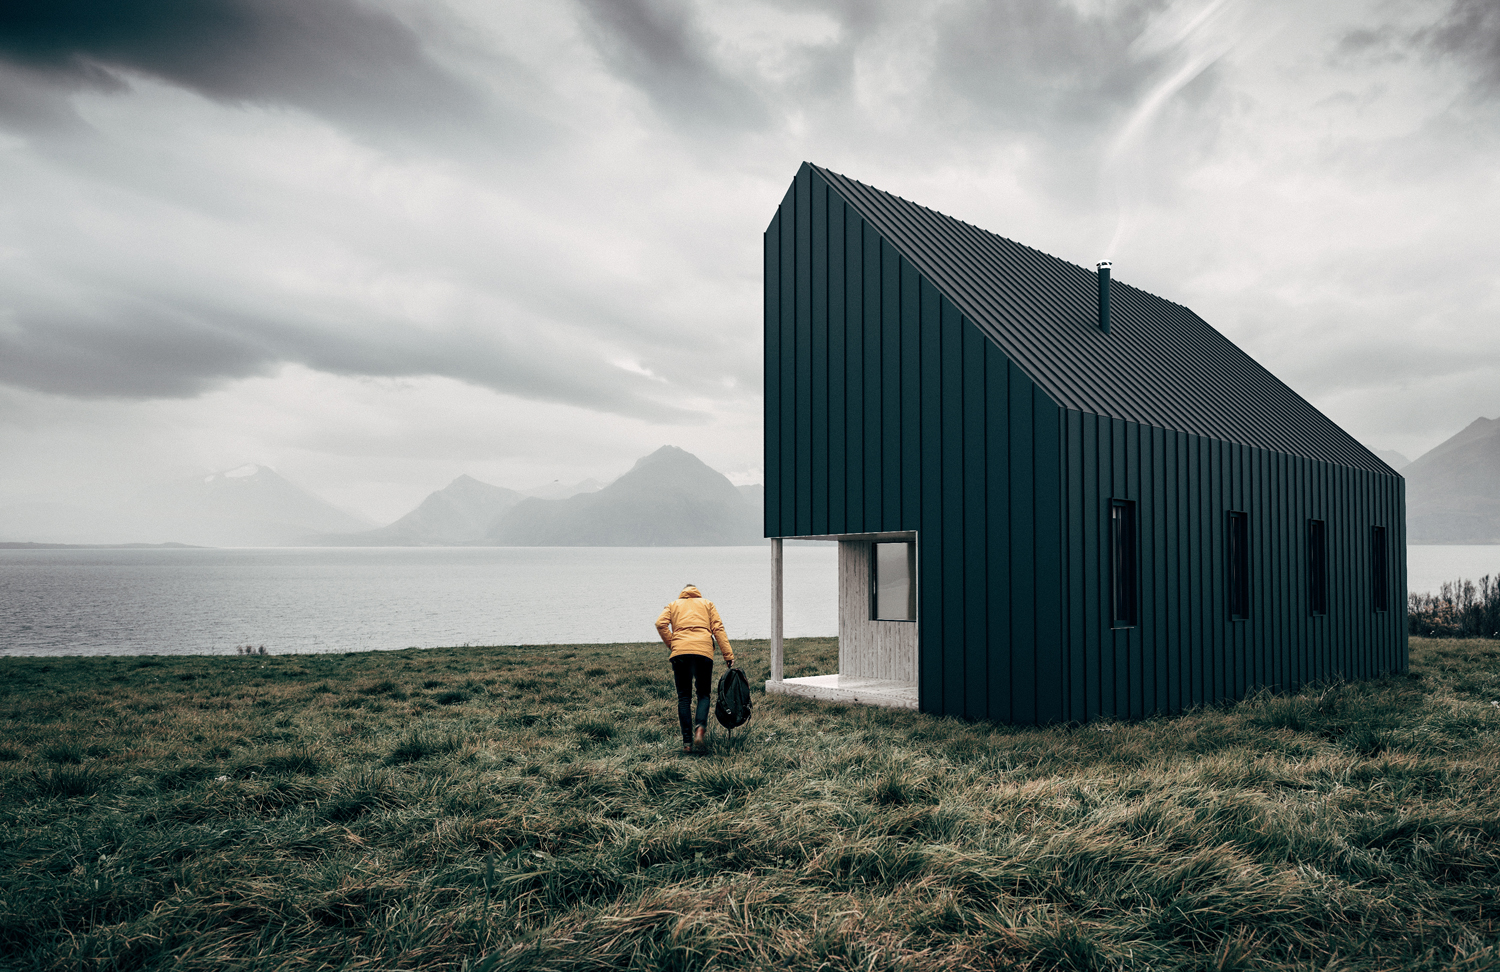 The Backcountry Hut